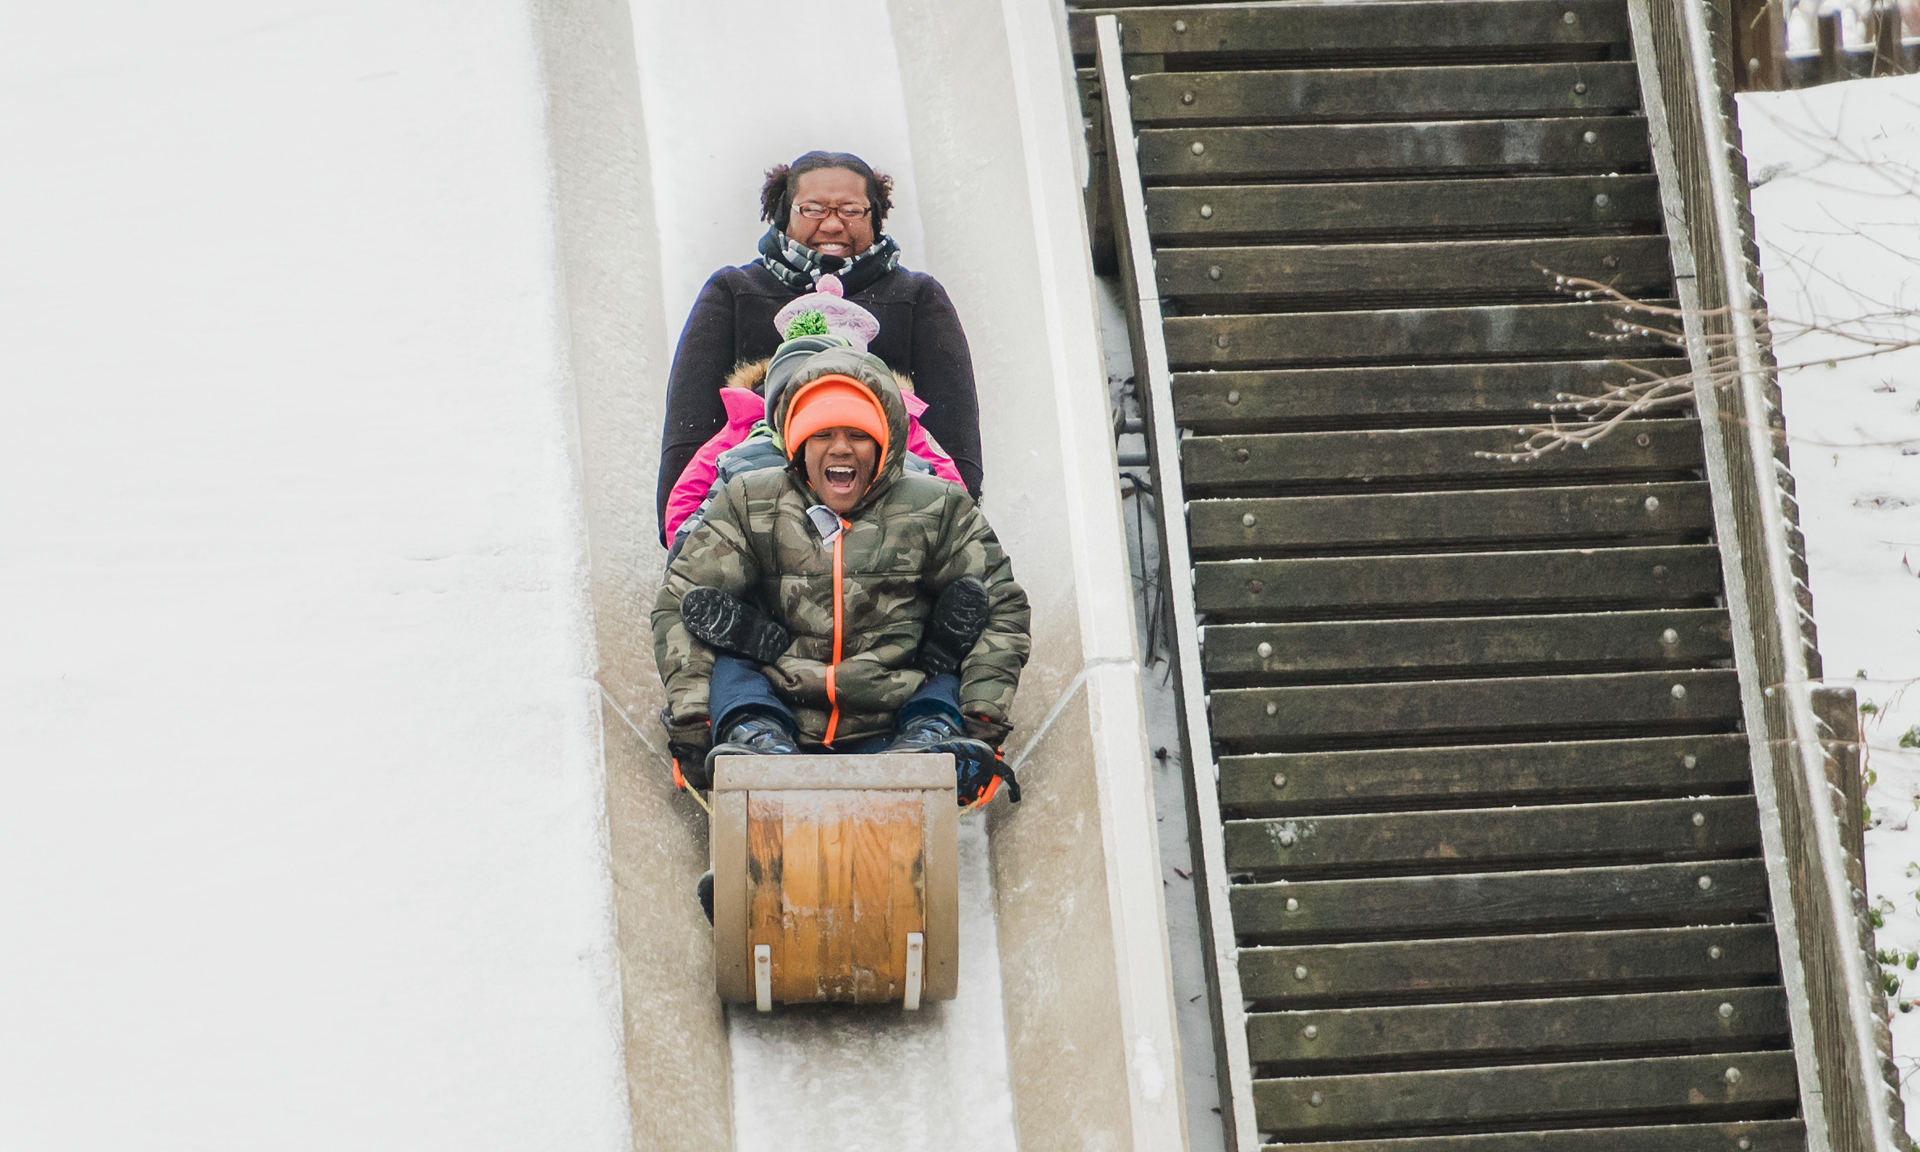 Cleveland Metroparks Toboggan Chutes Open Friday, November 24